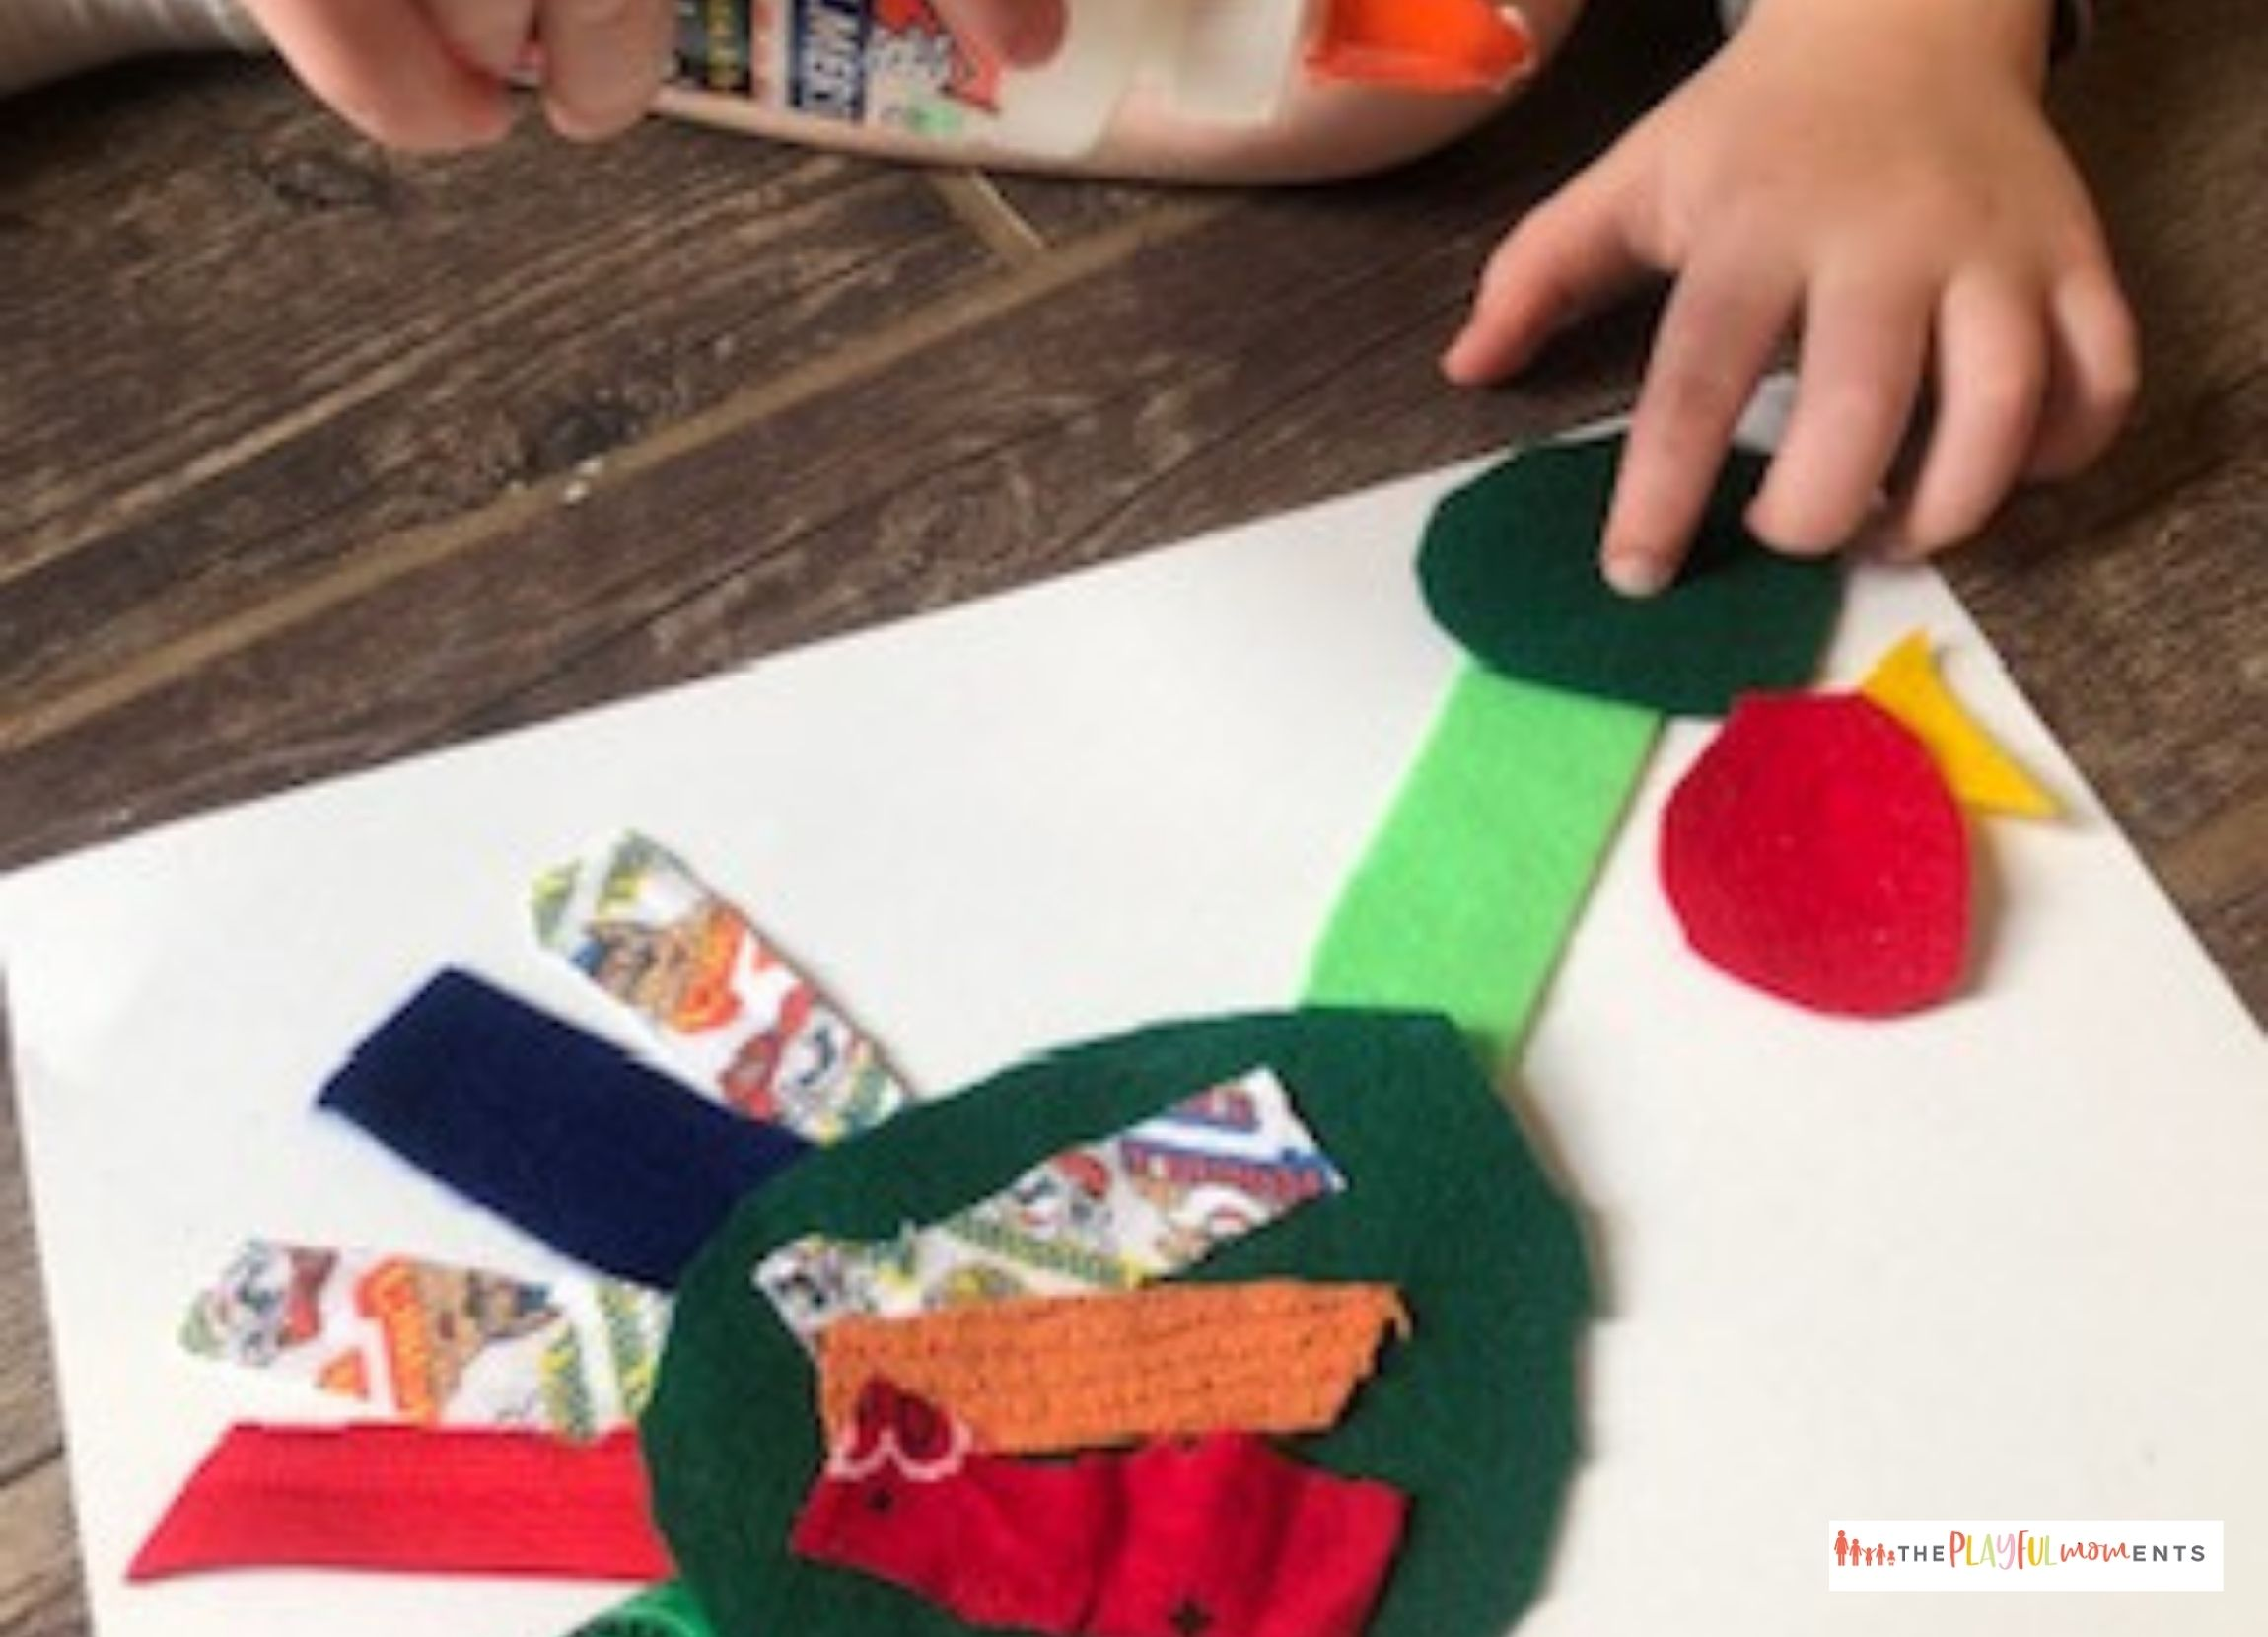 Child gluing turkey made from fabric scraps onto paper